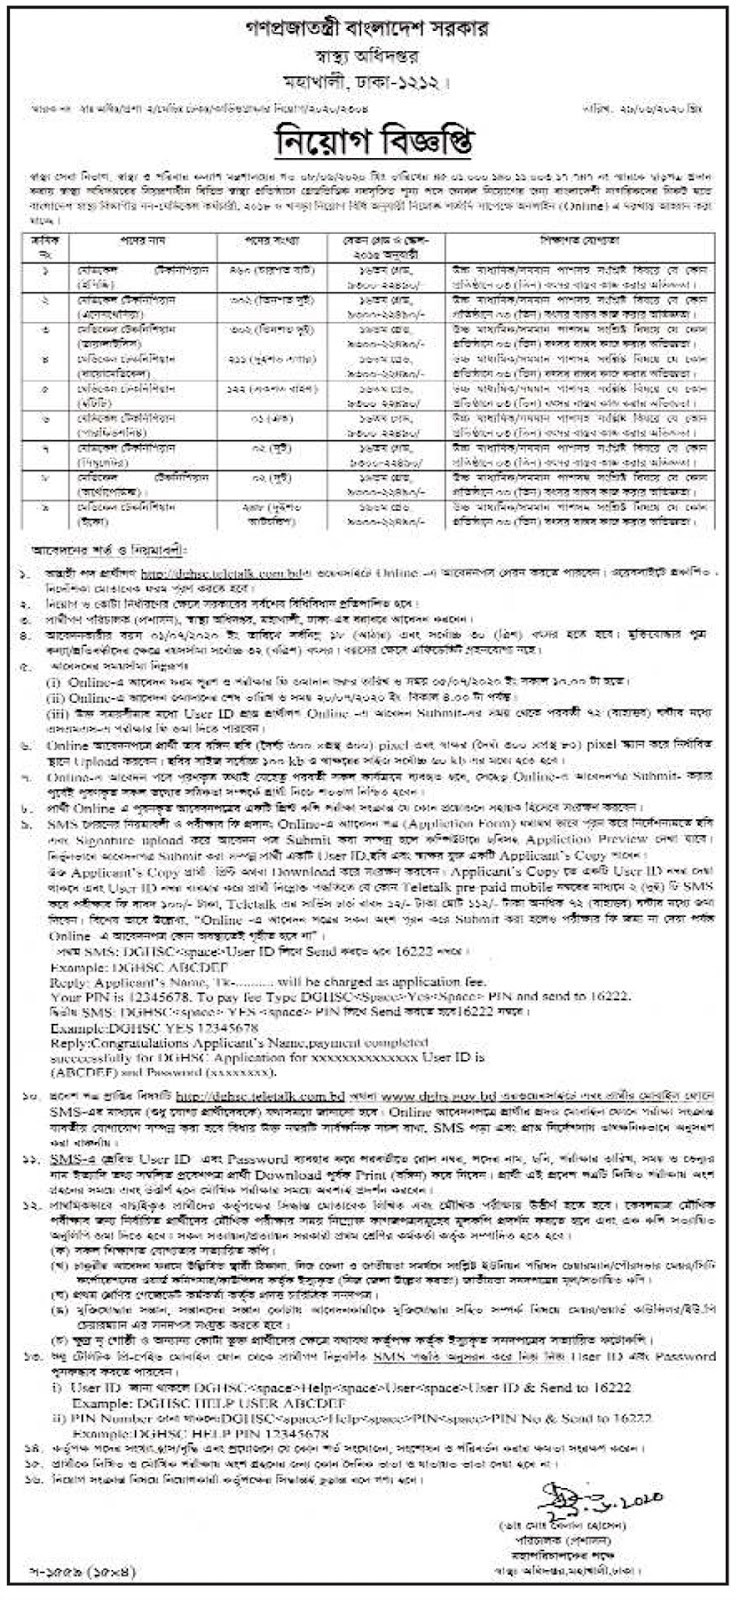 Directorate General Of Health Services (DGHS) Job Circular 2020